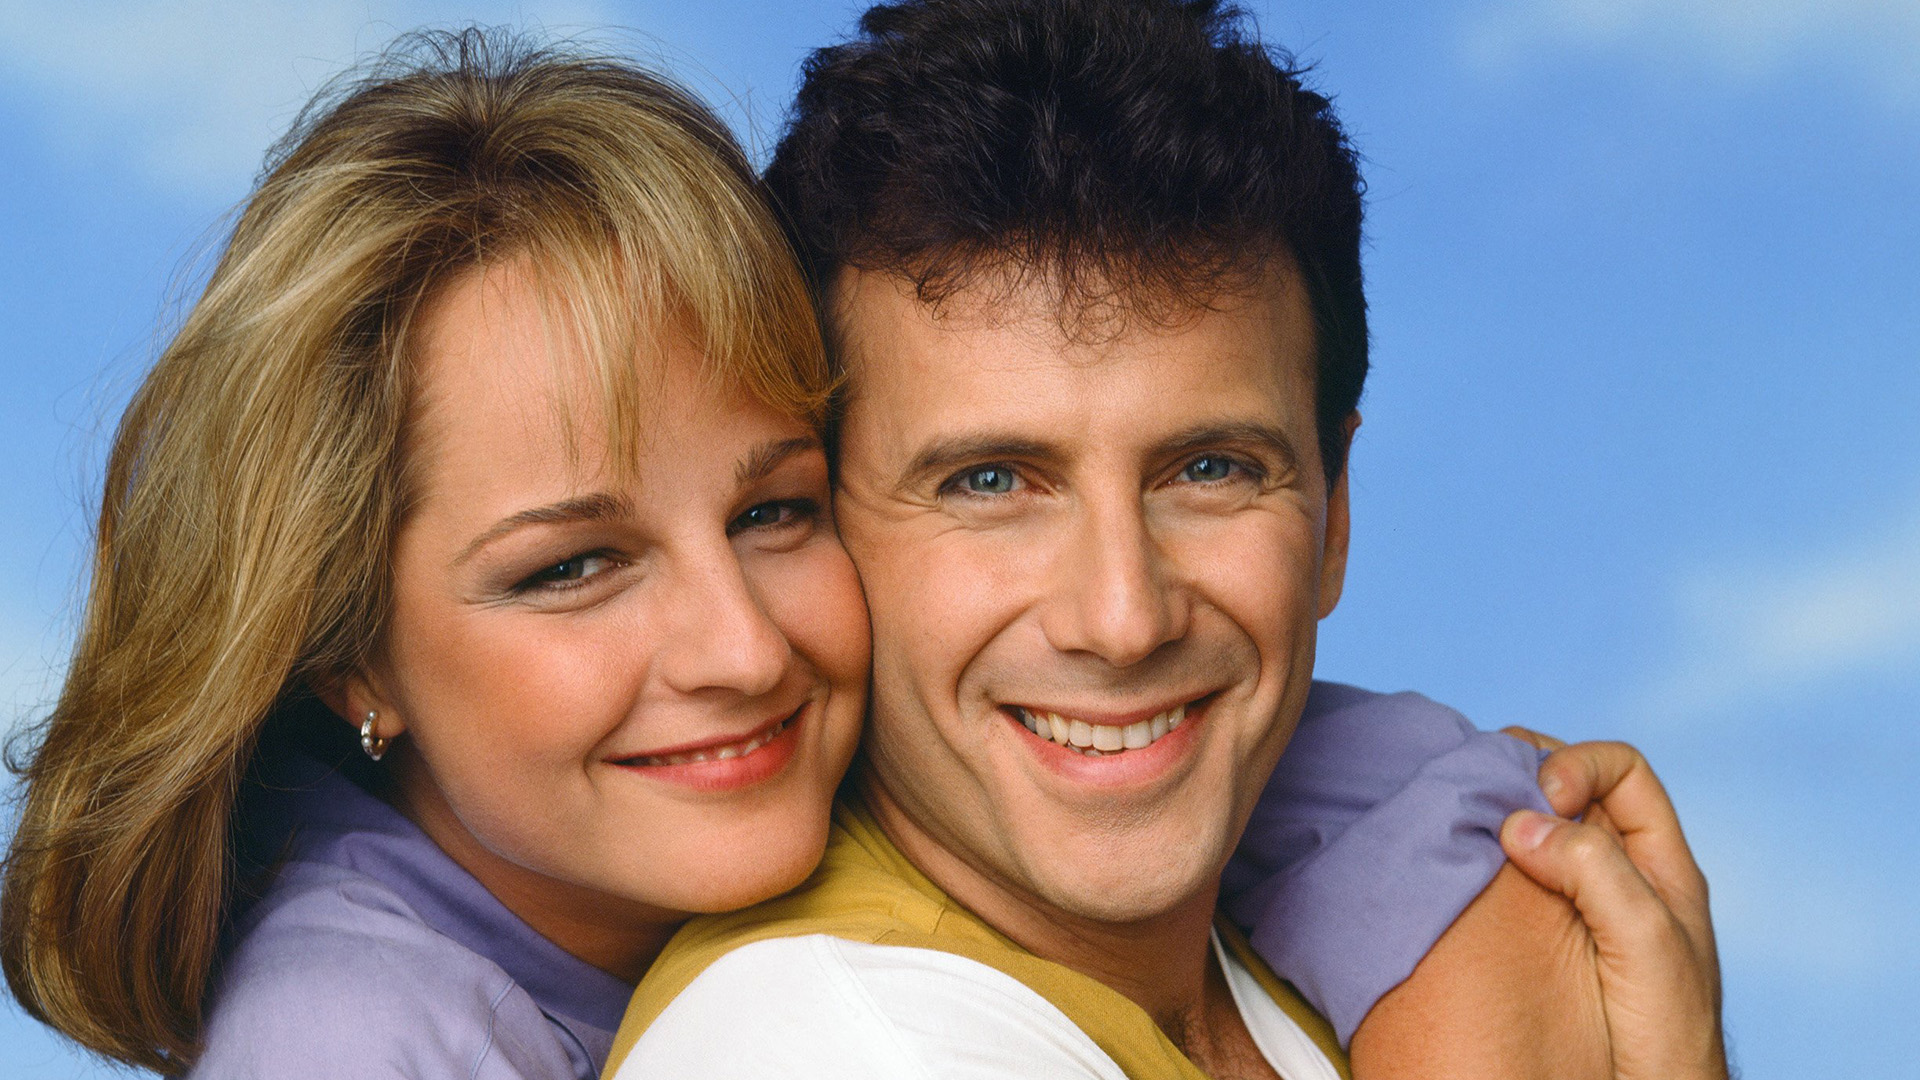 Mad About You Reboot Release Date: When Is Part 2 of the